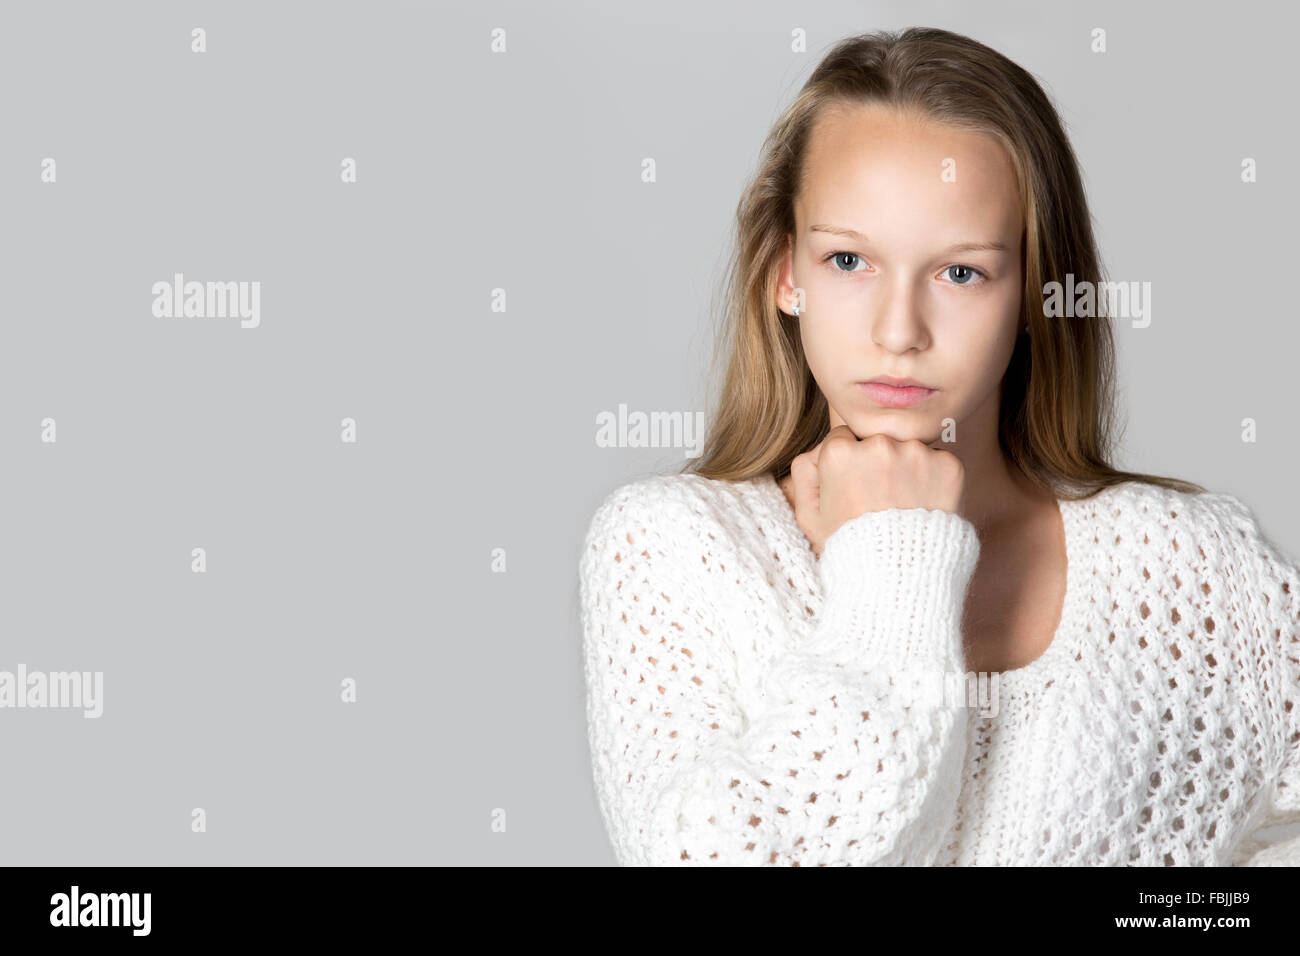 Portrait of beautiful focused pensive casual caucasian teenage girl wearing white knitted sweater, studio image, Stock Photo